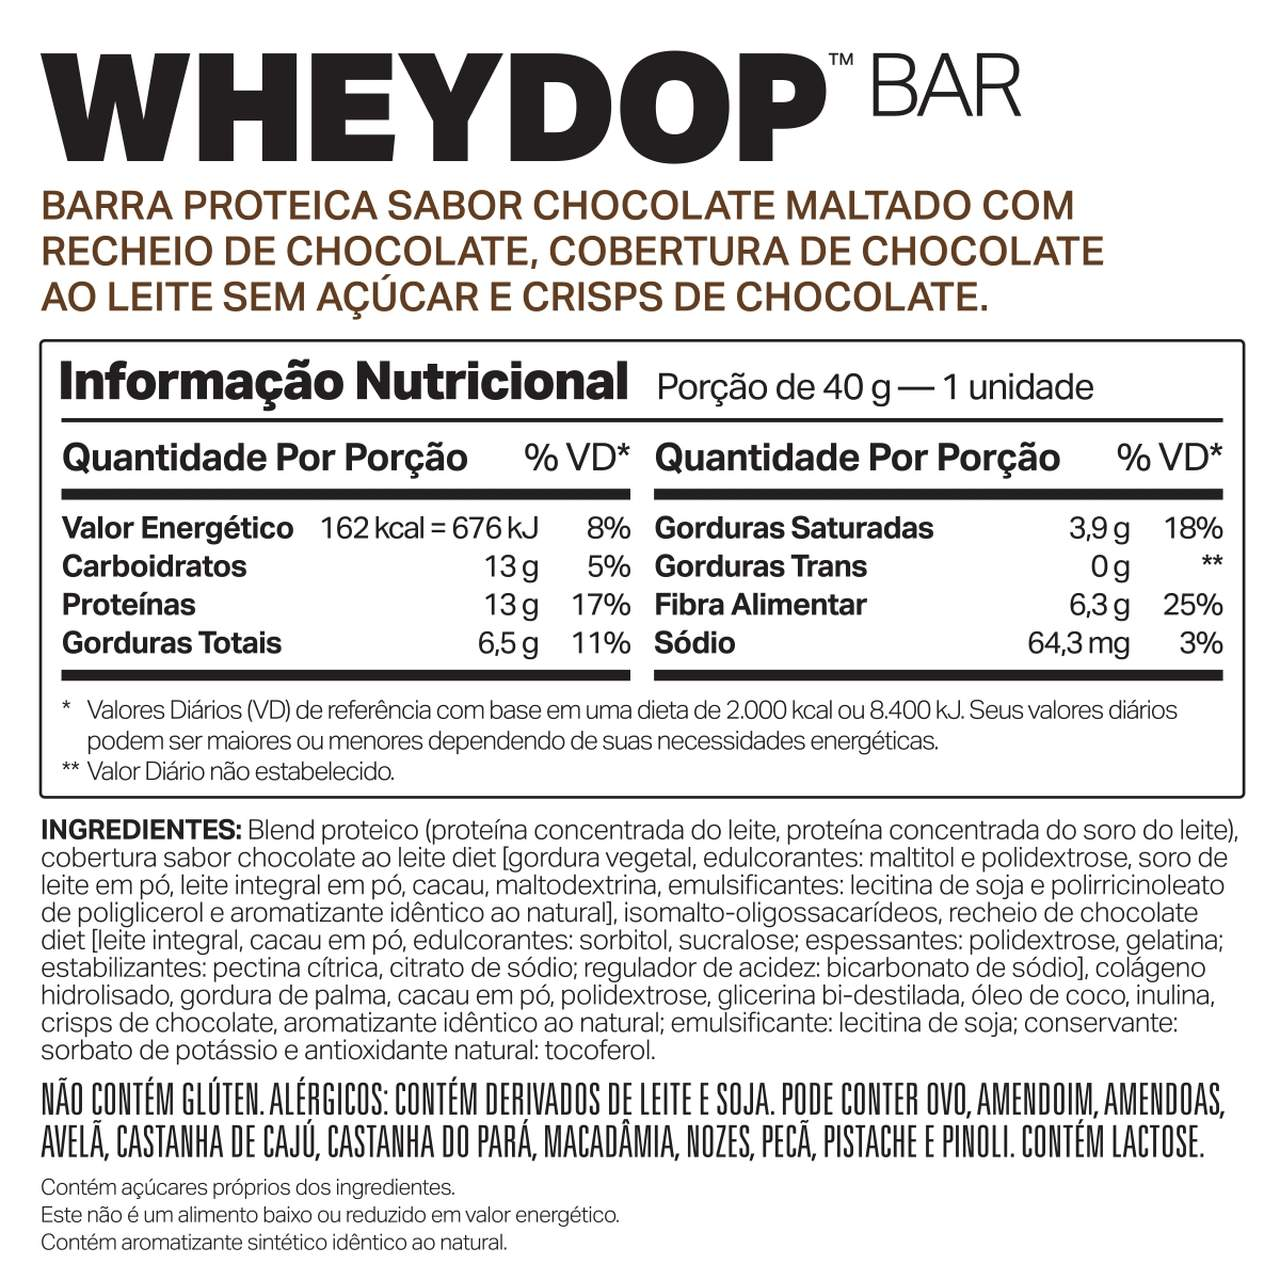 Wheydop Bar Display 480G (12 Barras de 40g) - Elemento Puro